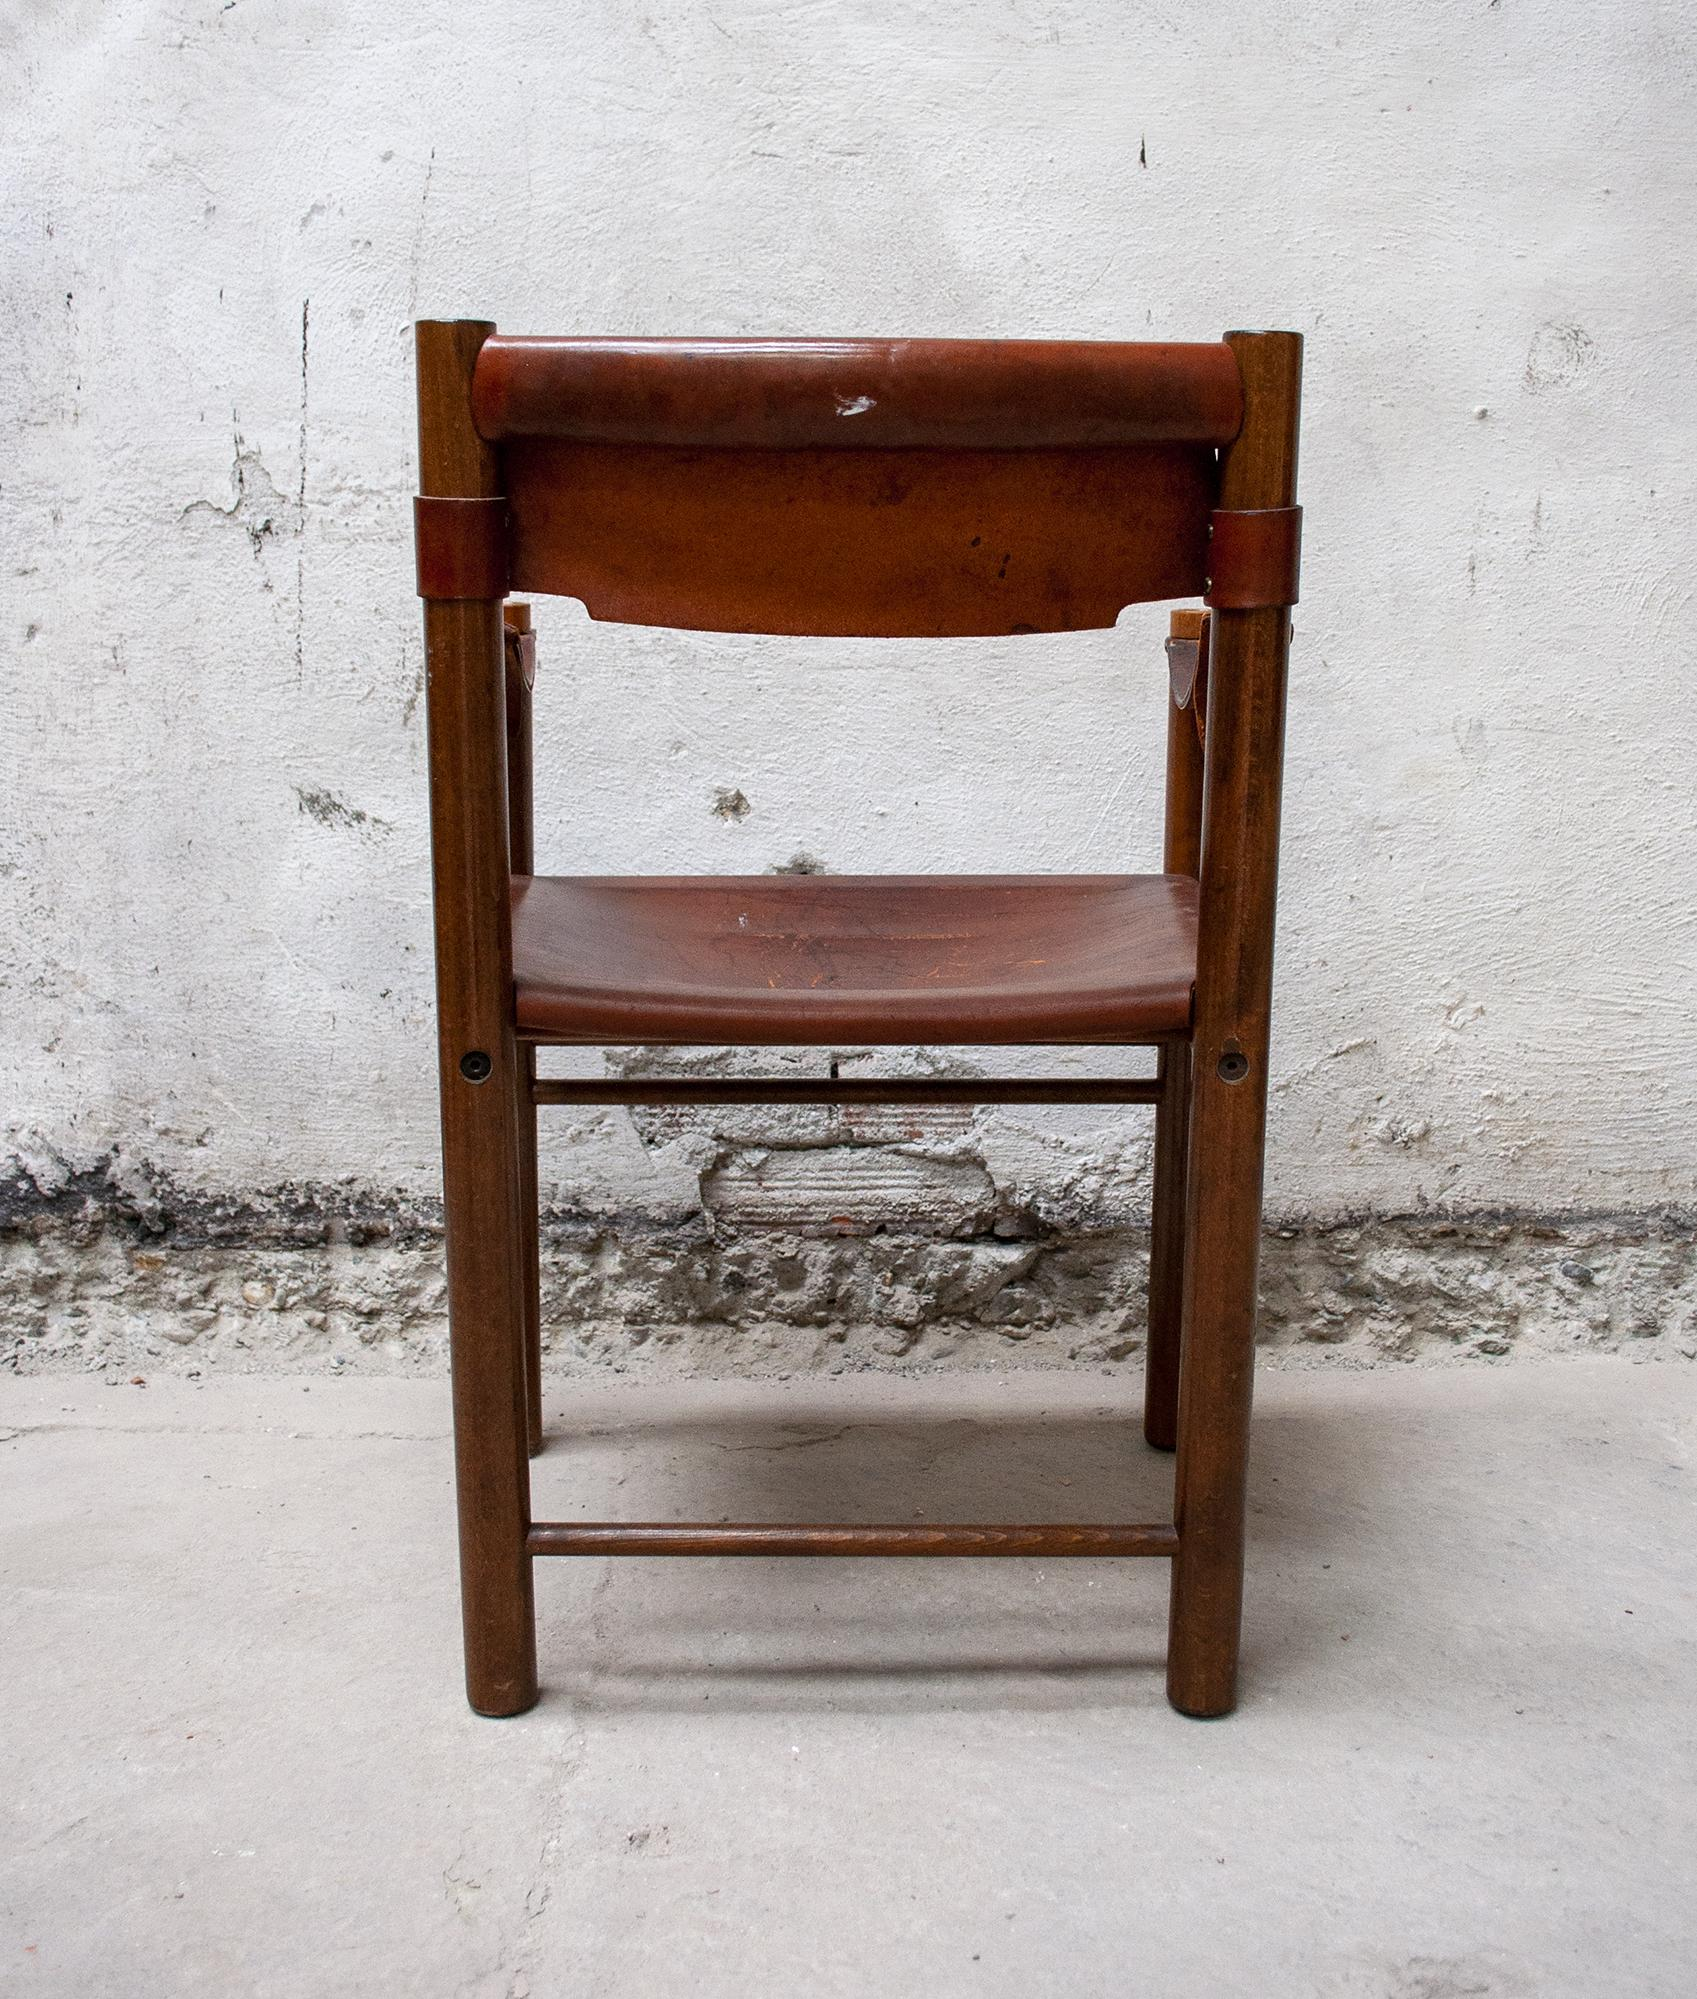 Vintage Armchair In Wood And Leather By Ibisco Chair, Italy 60u0027s